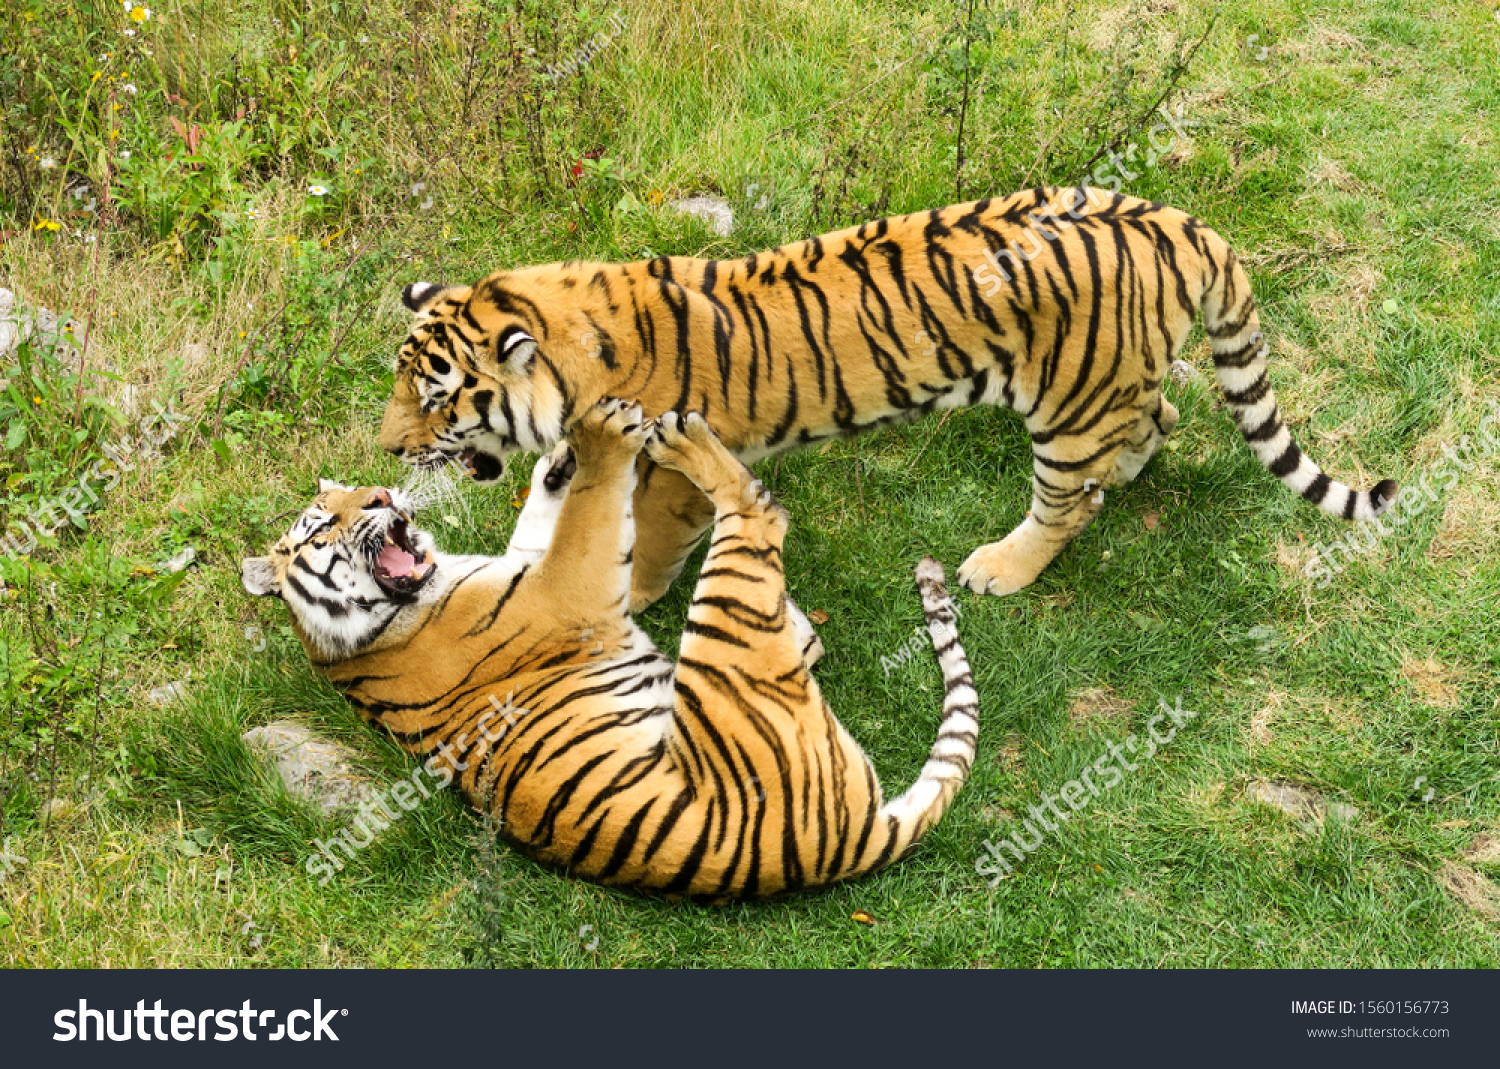 stock-photo-two-siberian-tigers-playing-